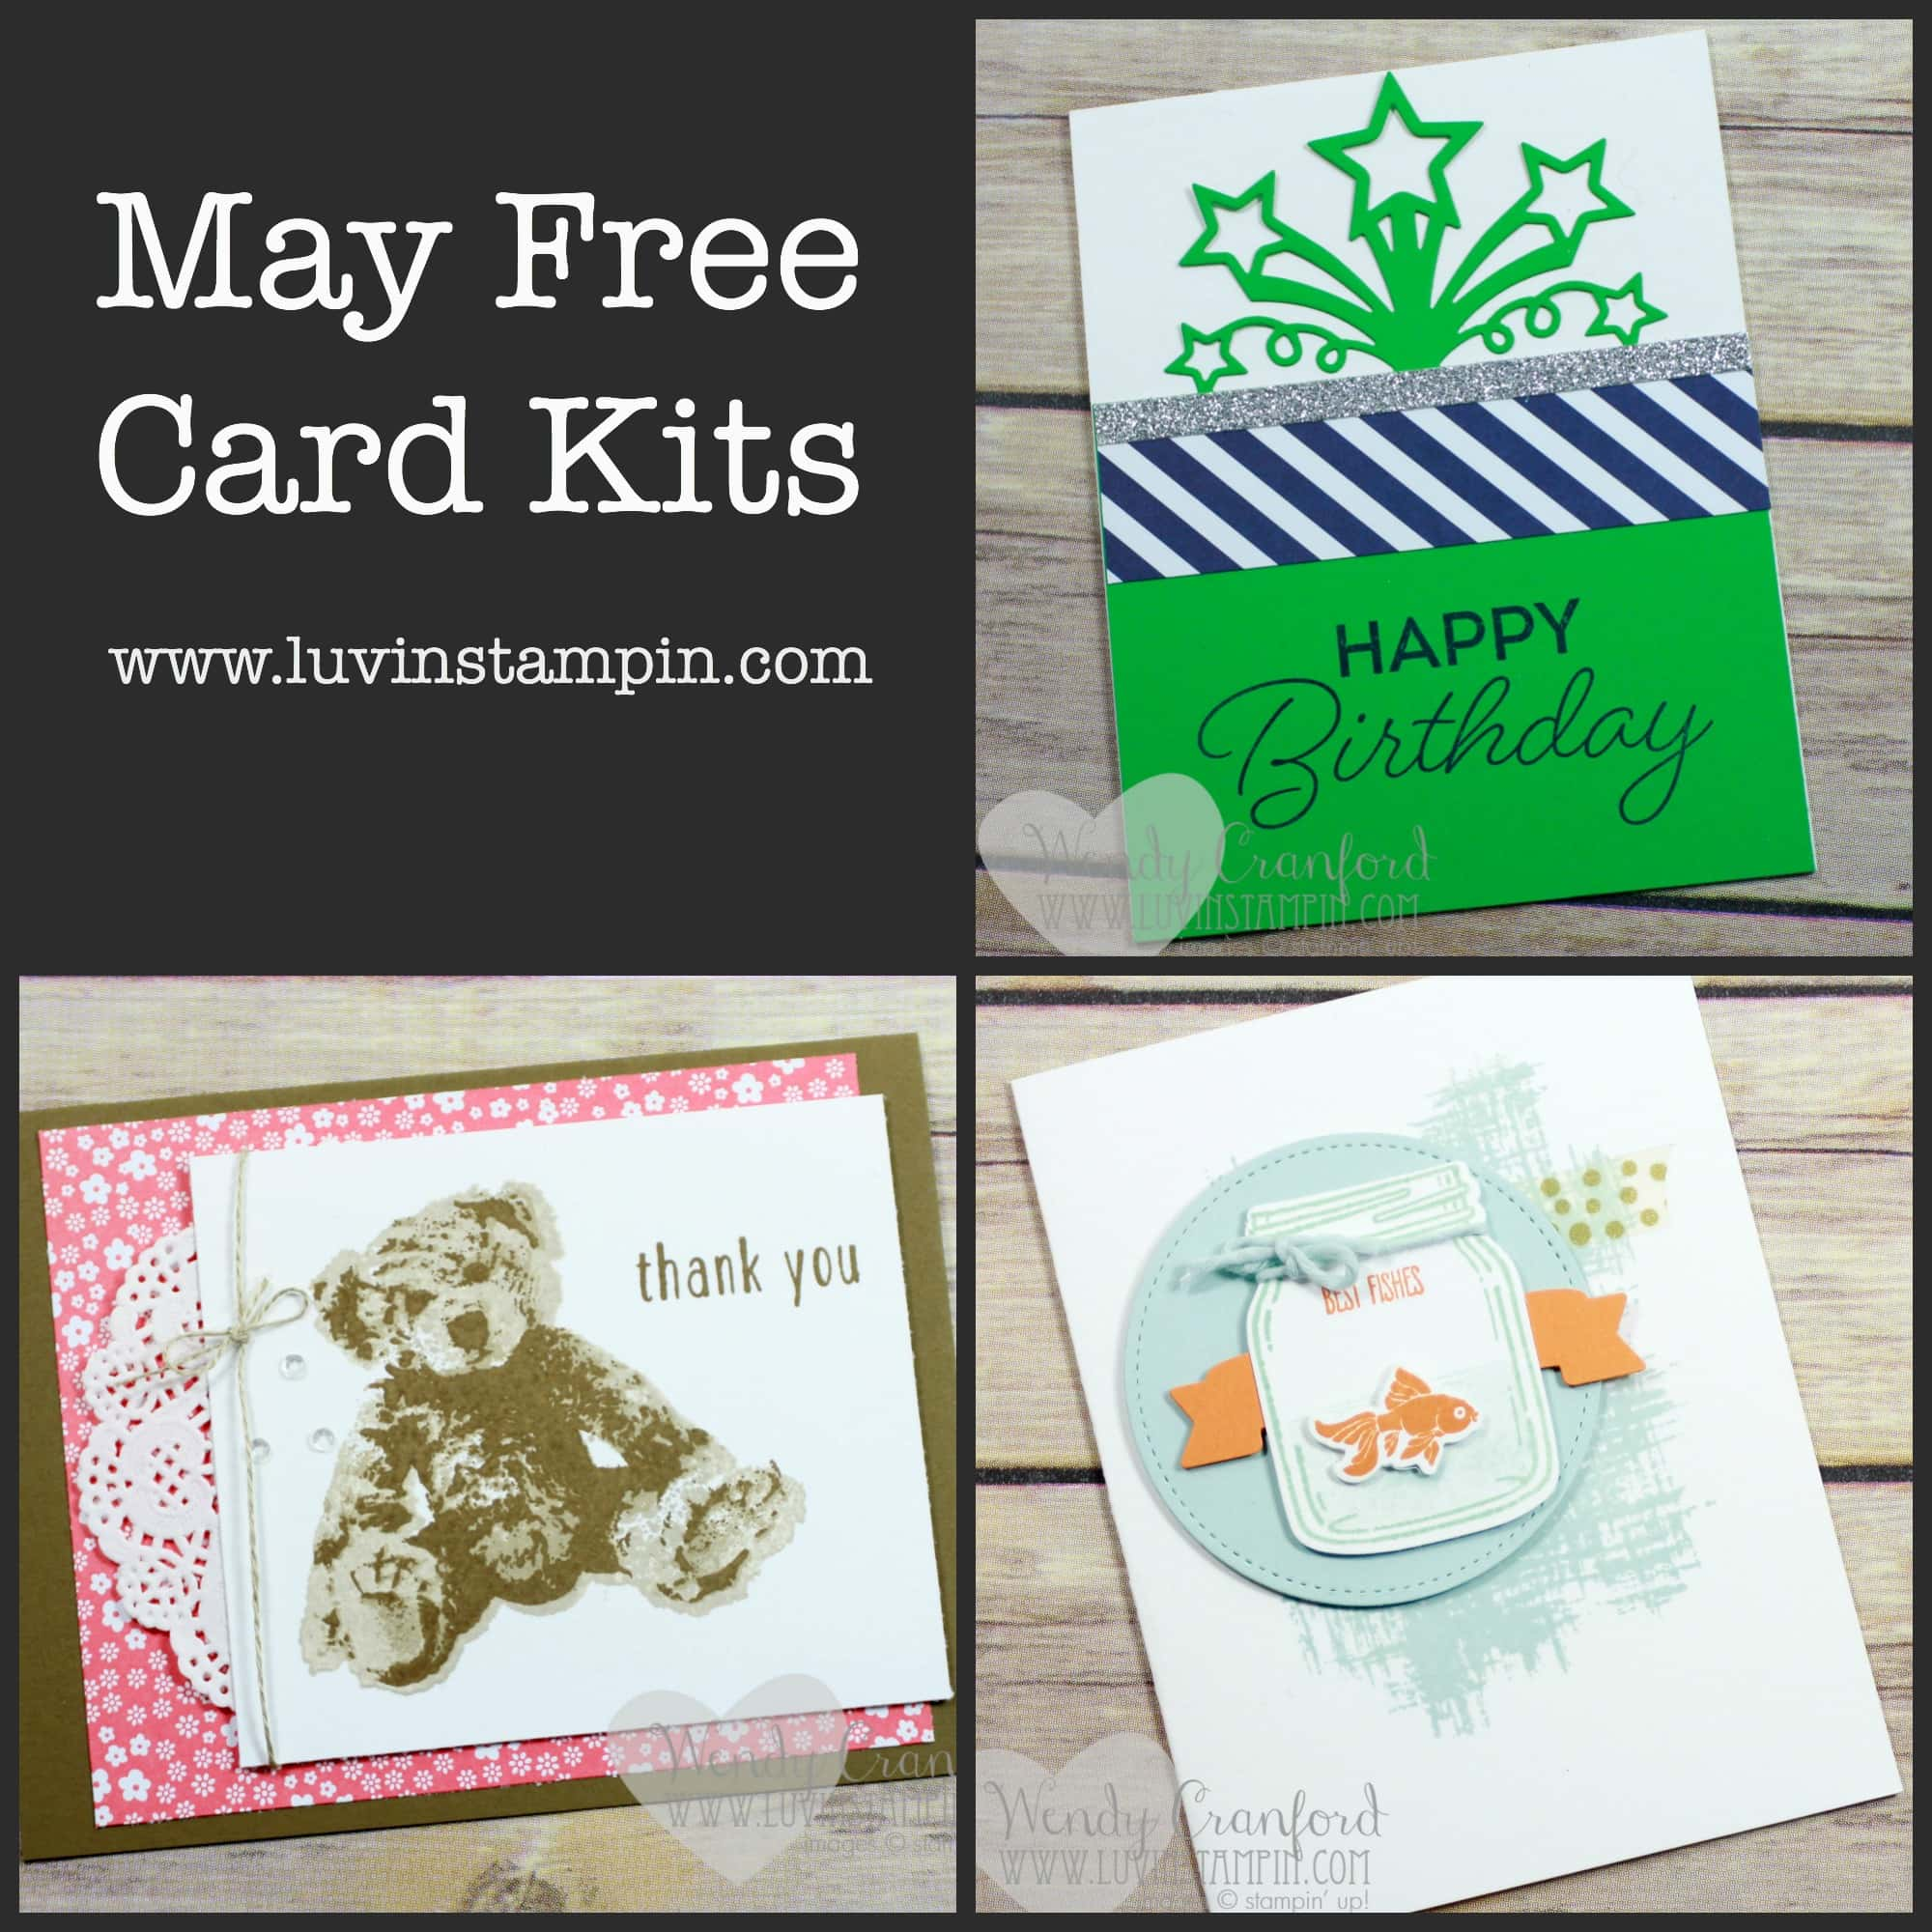 Live Event Today May Free Card Kits - Luvin Stampin